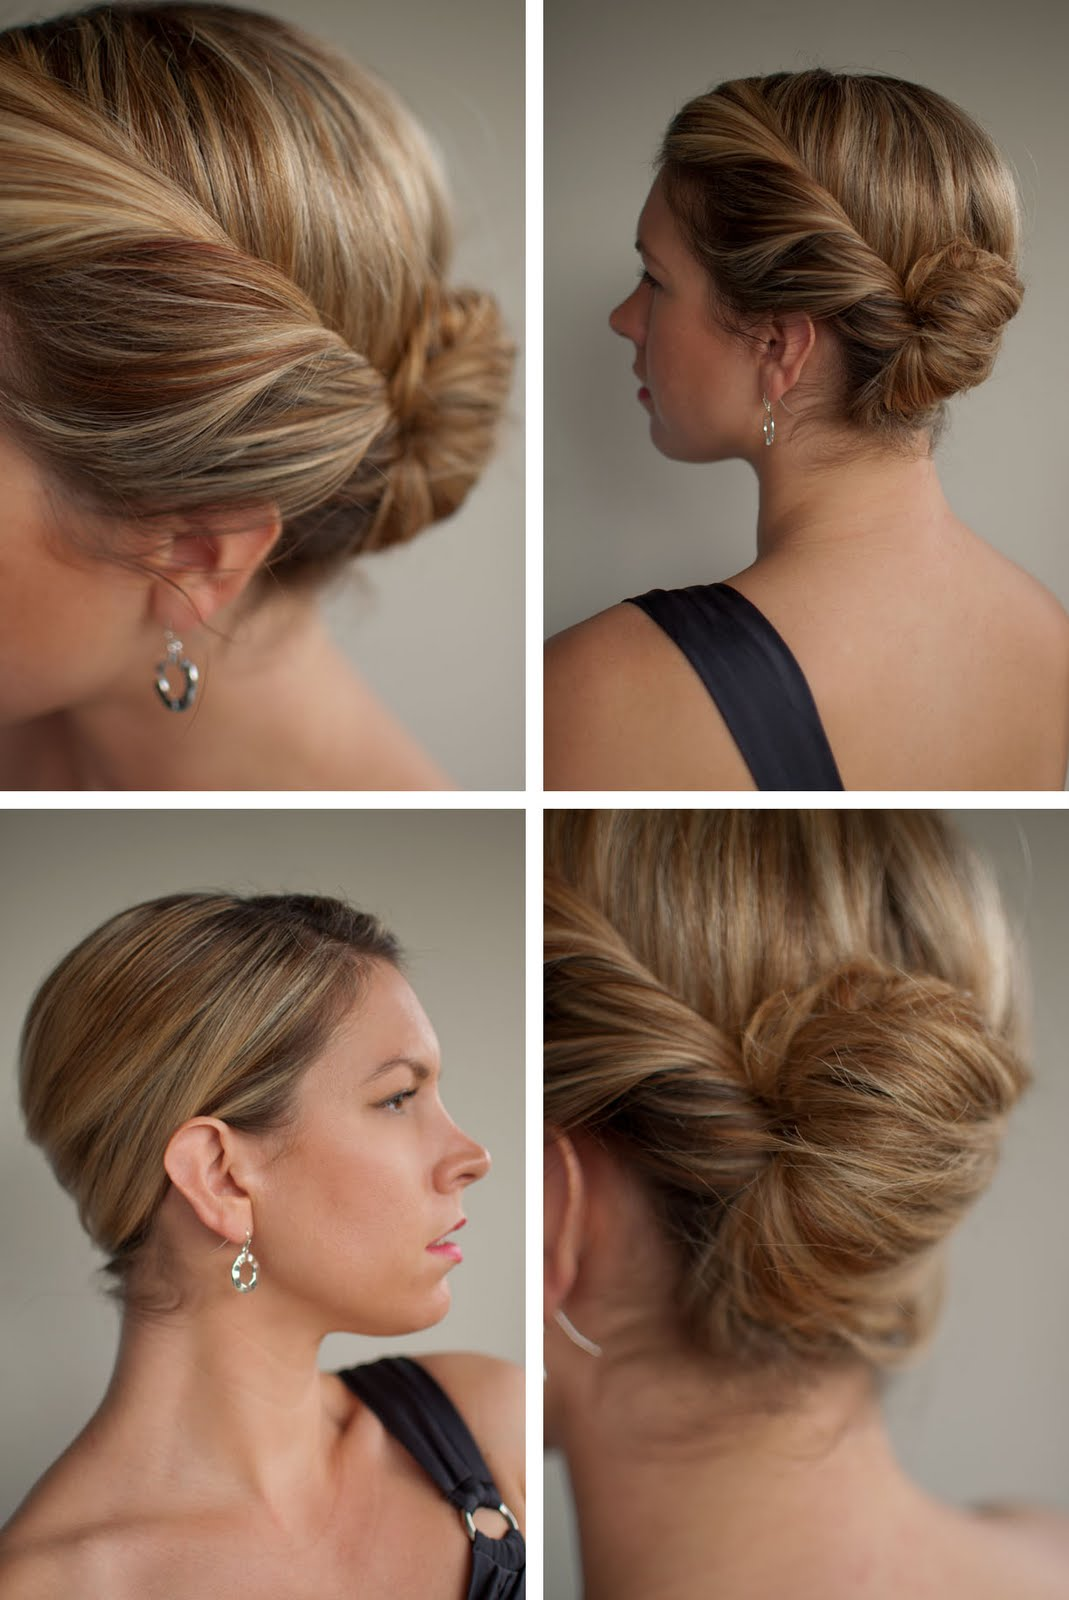 Stupendous 30 Days Of Twist Amp Pin Hairstyles Day 28 Hair Romance Hairstyles For Women Draintrainus